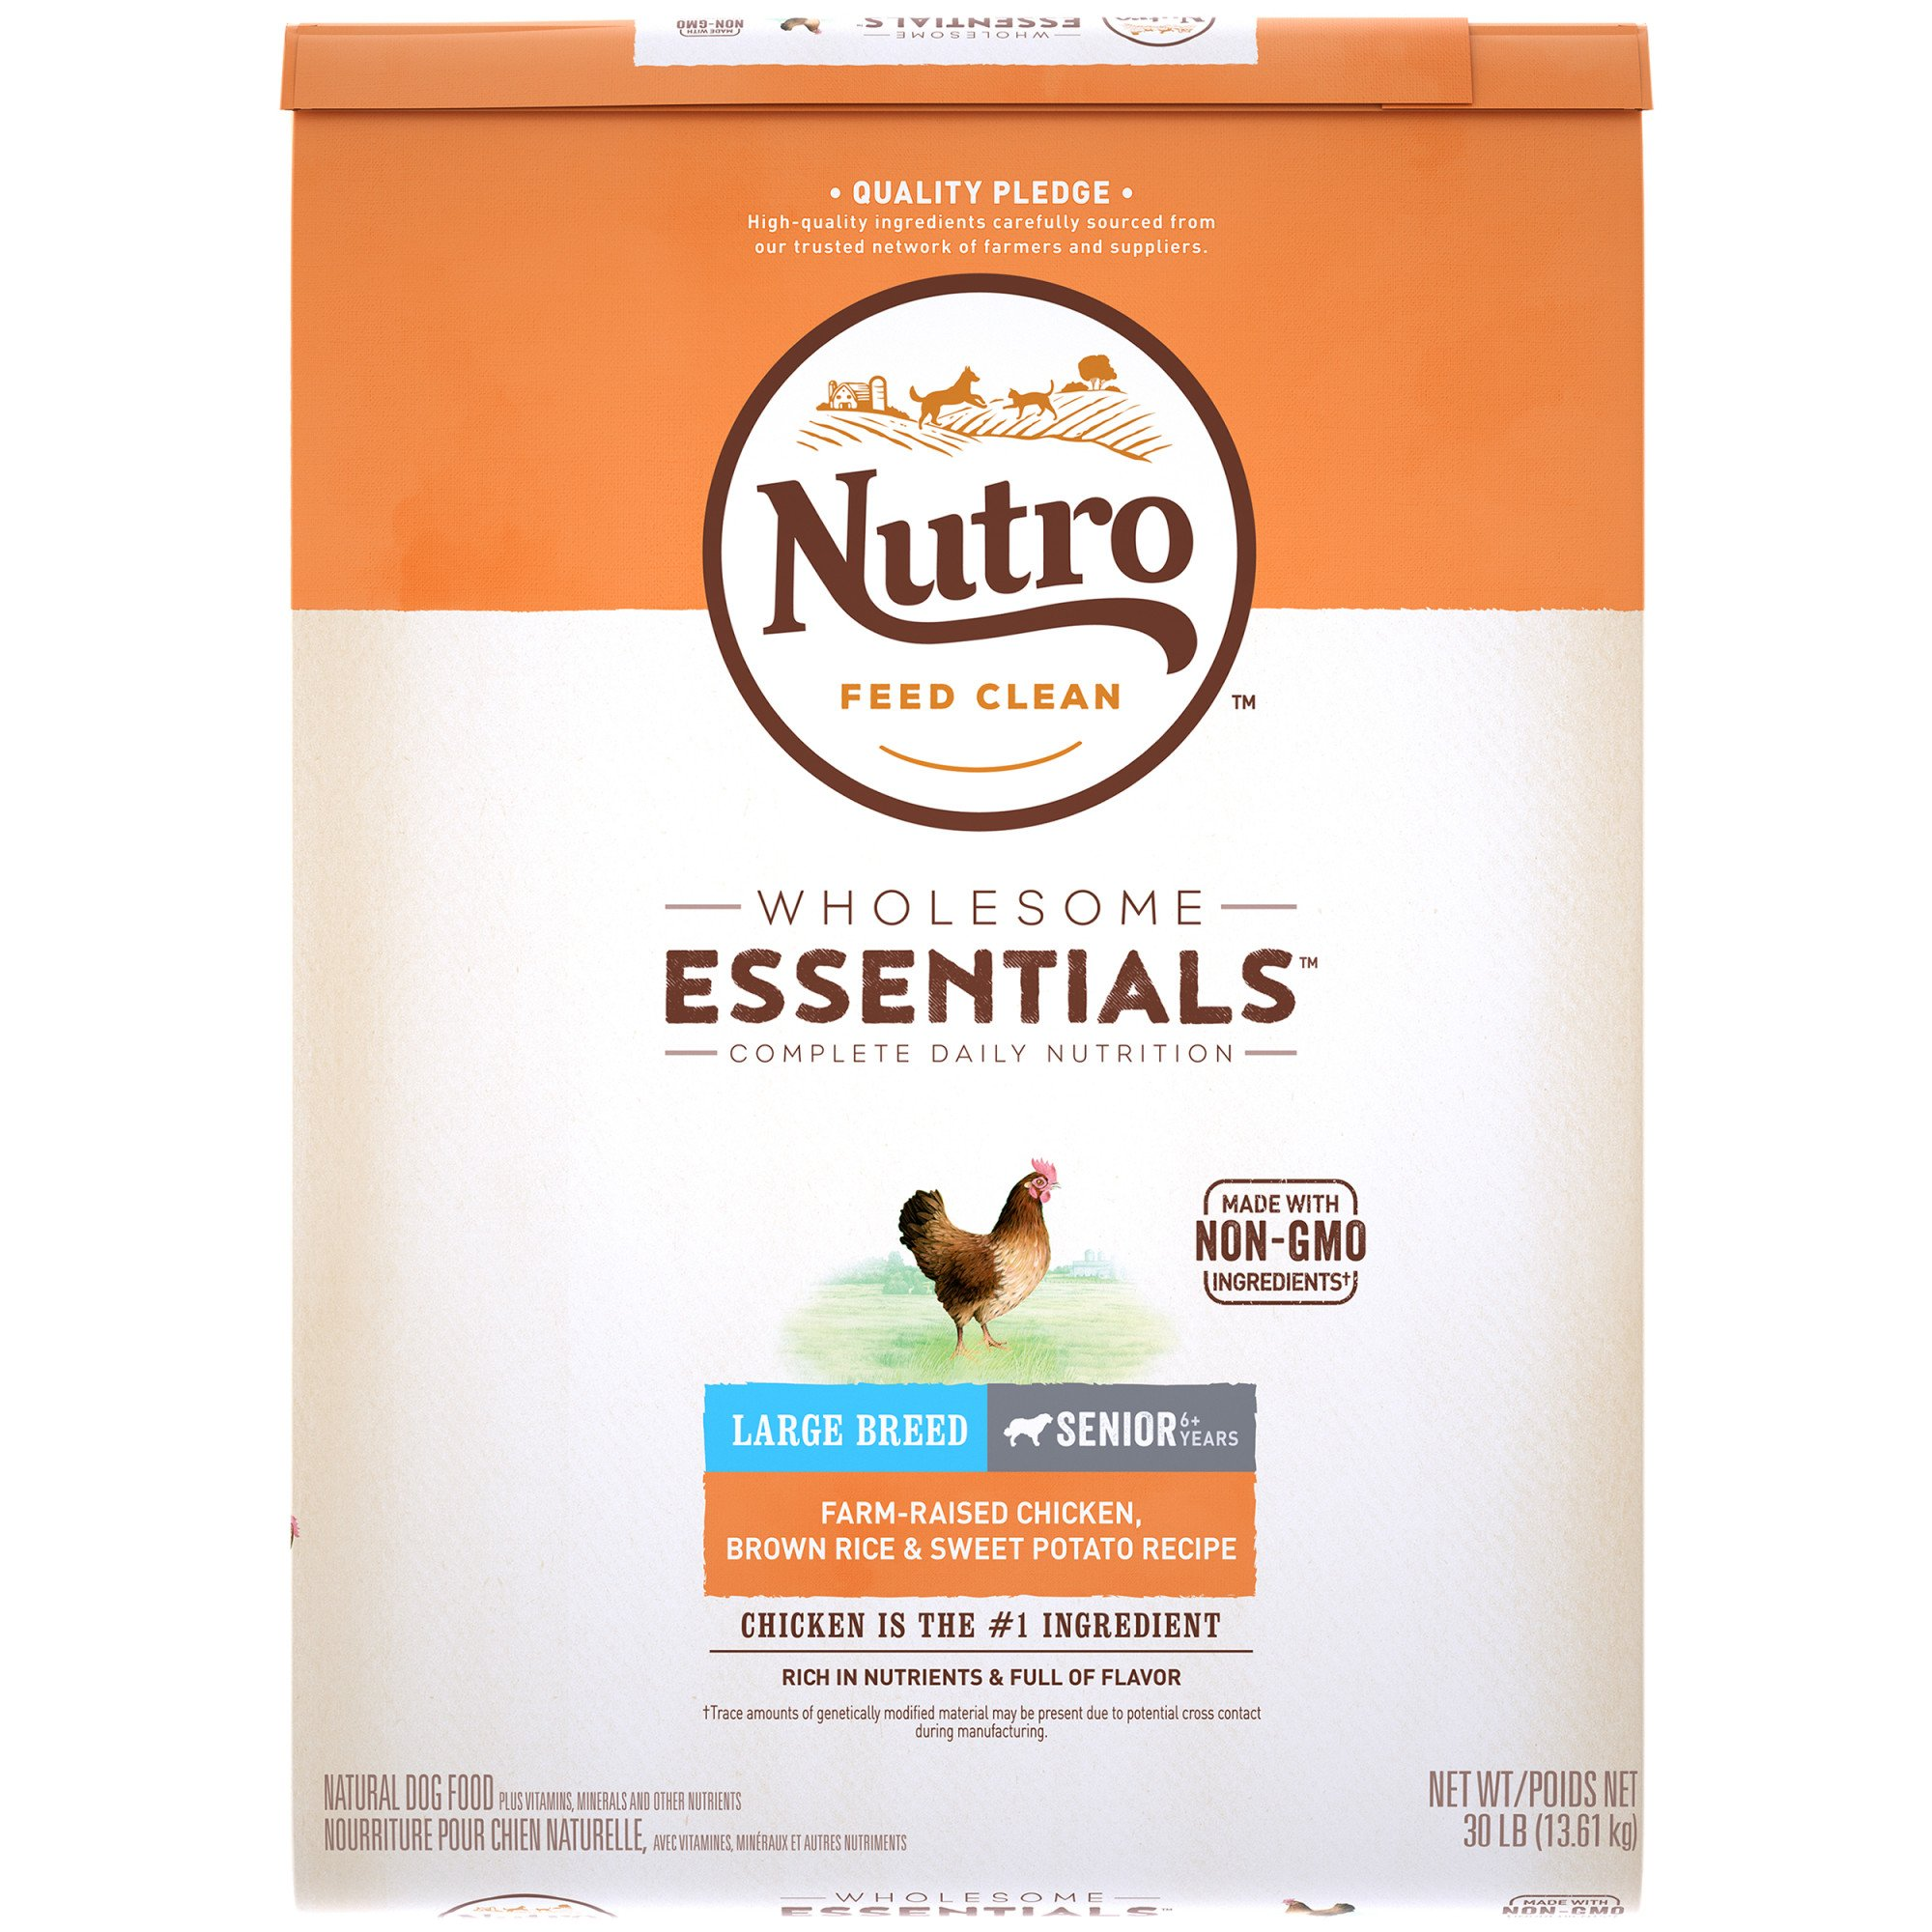 Nutro Chicken, Whole Brown Rice and Oatmeal Large Breed Senior Dog Food